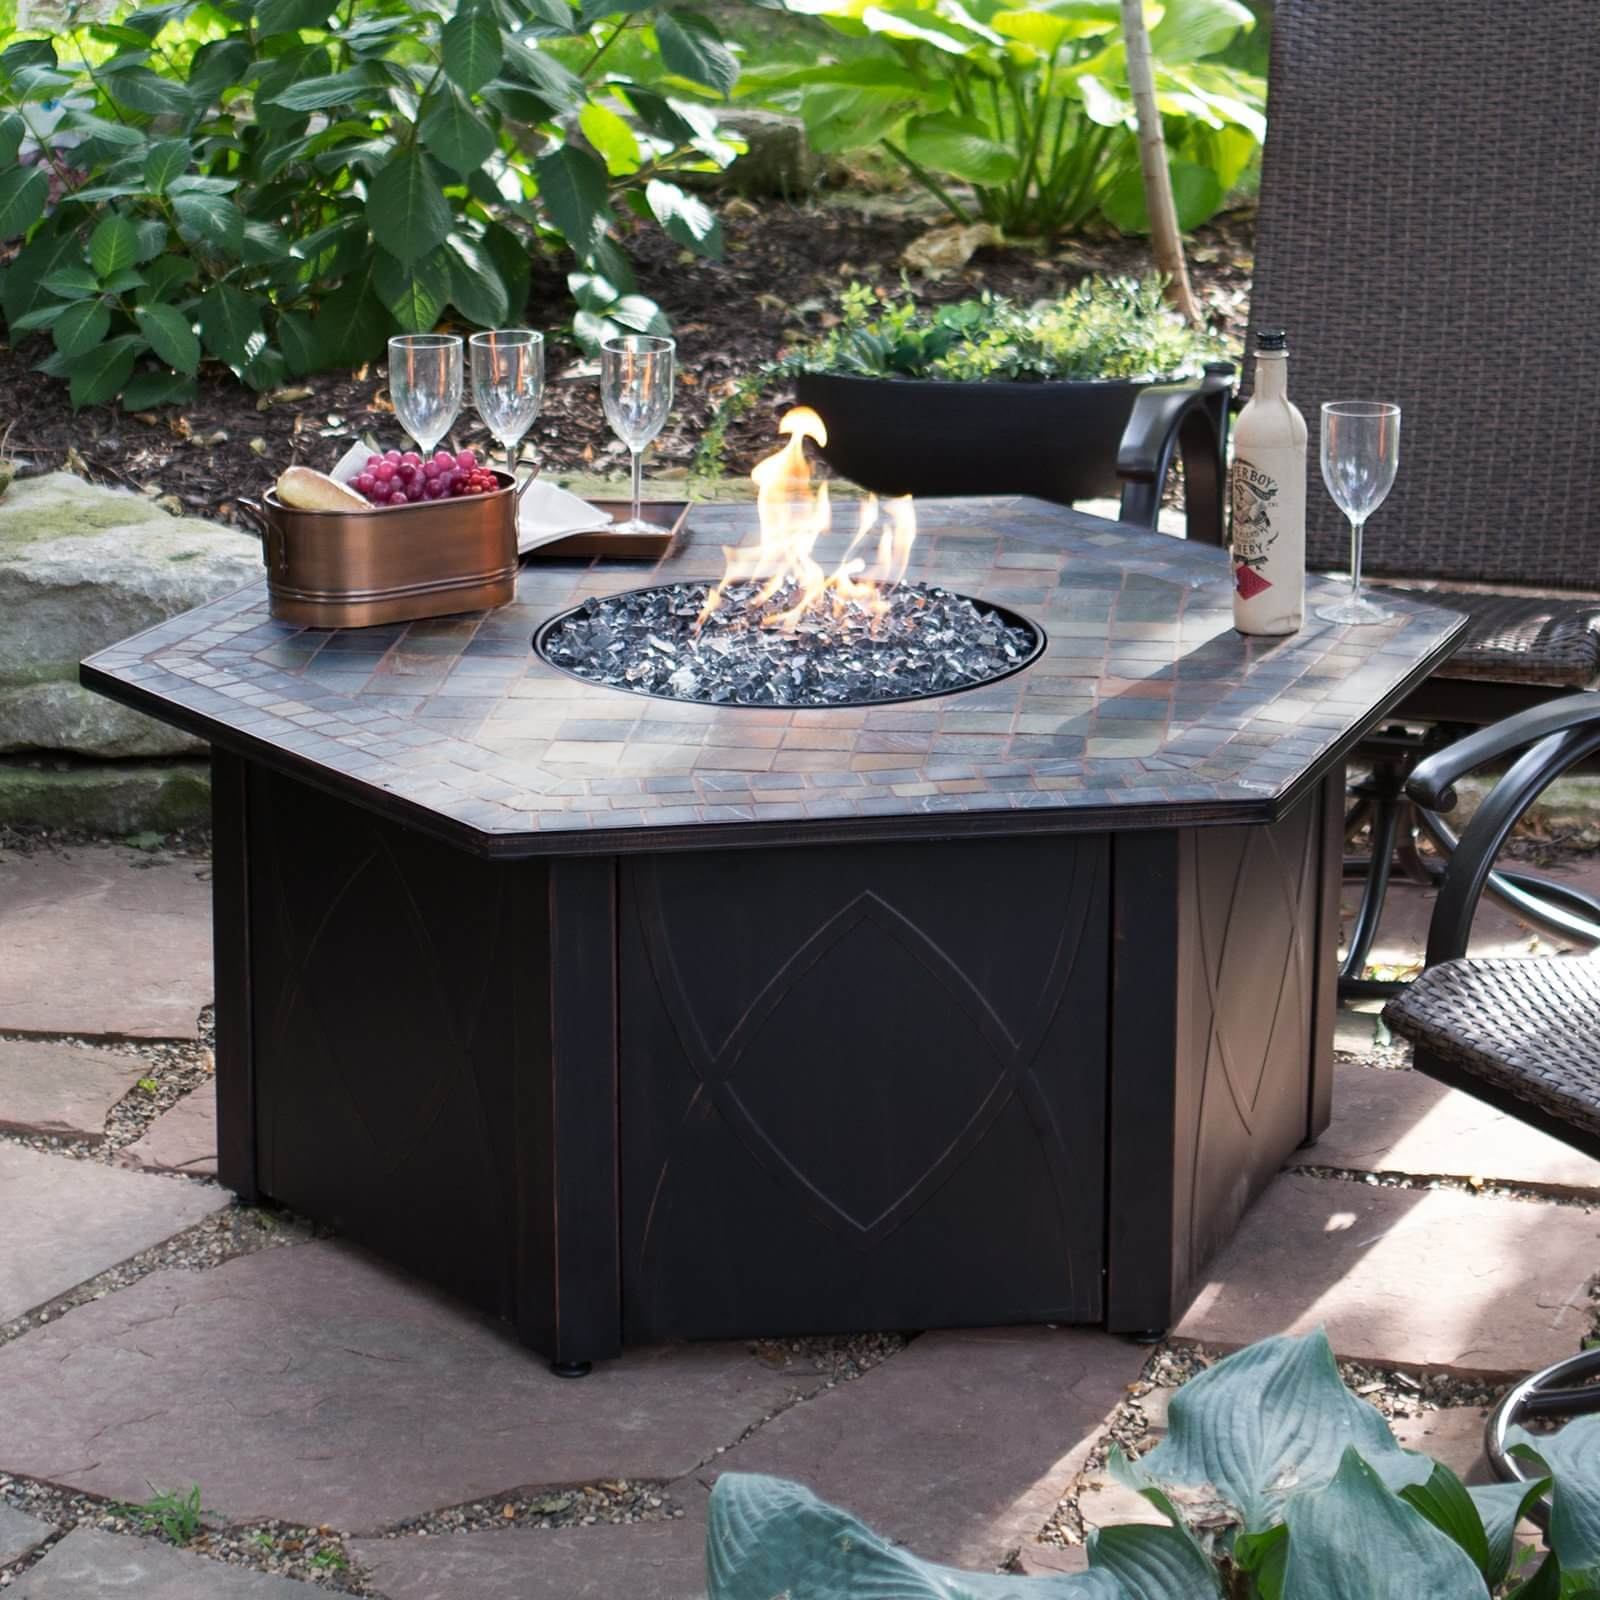 Top 15 Types Of Propane Patio Fire Pits With Table Buying Guide